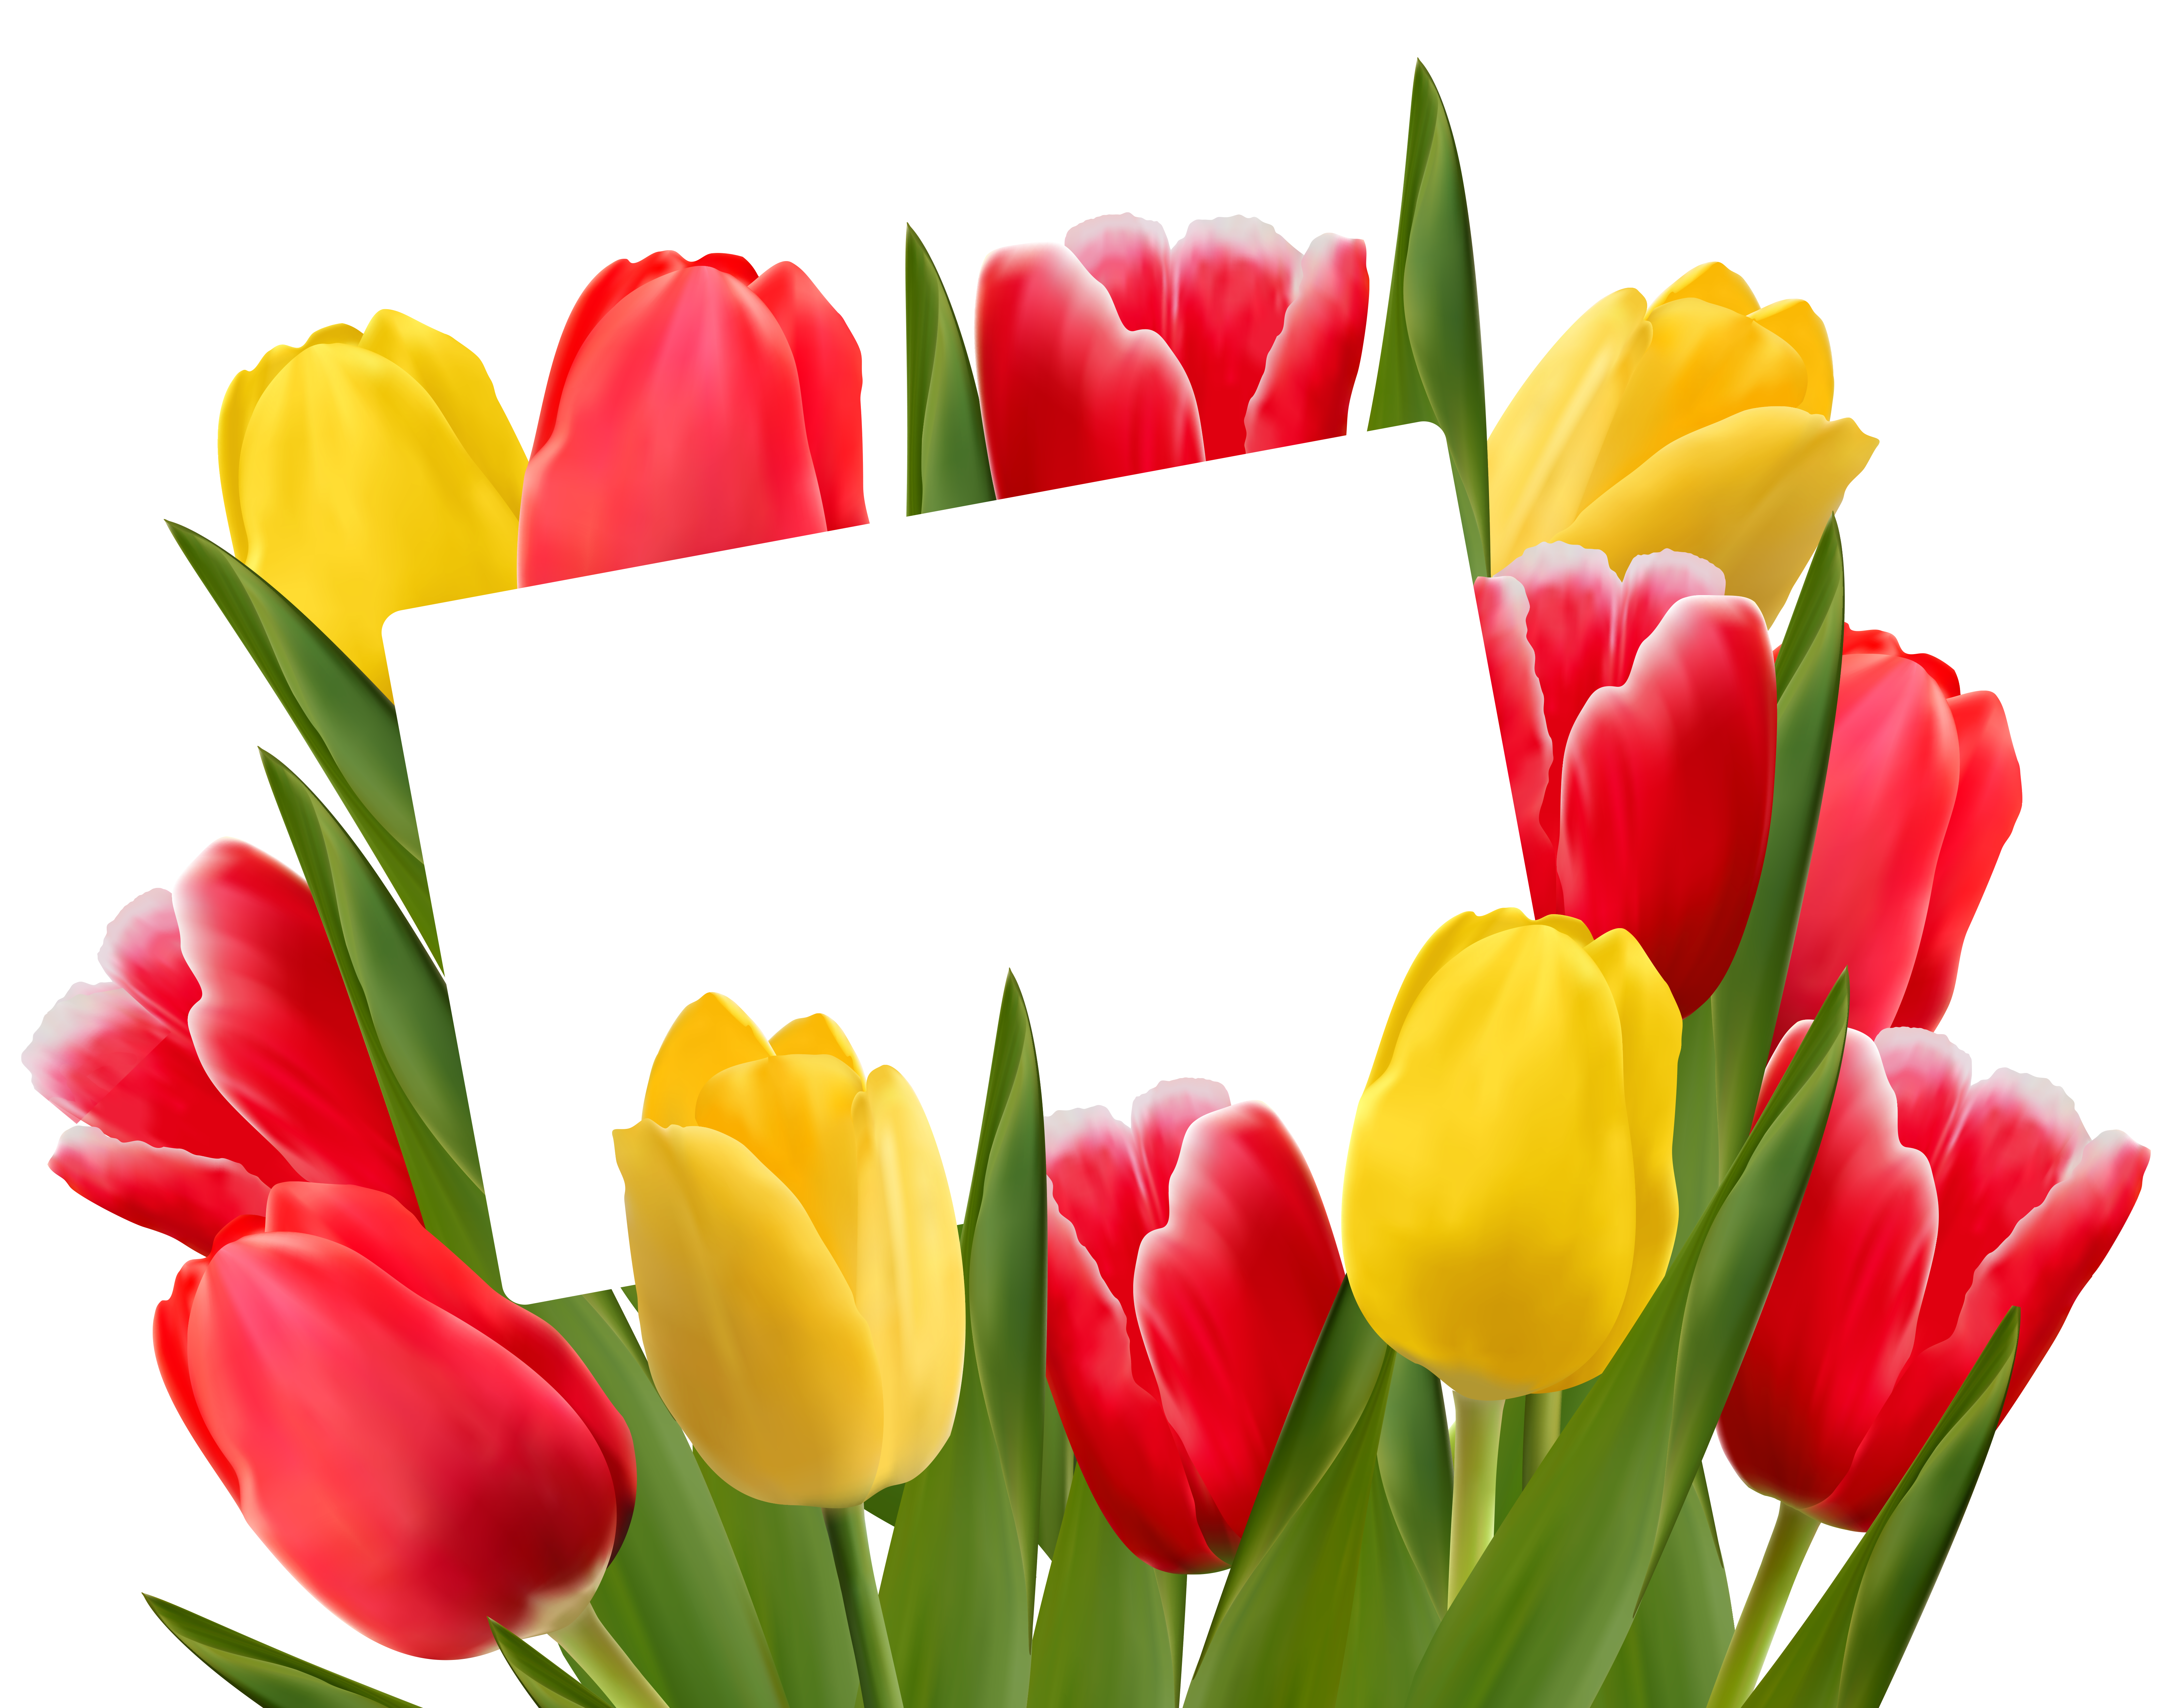 Free Yellow Tulip Cliparts, Download Free Clip Art, Free.